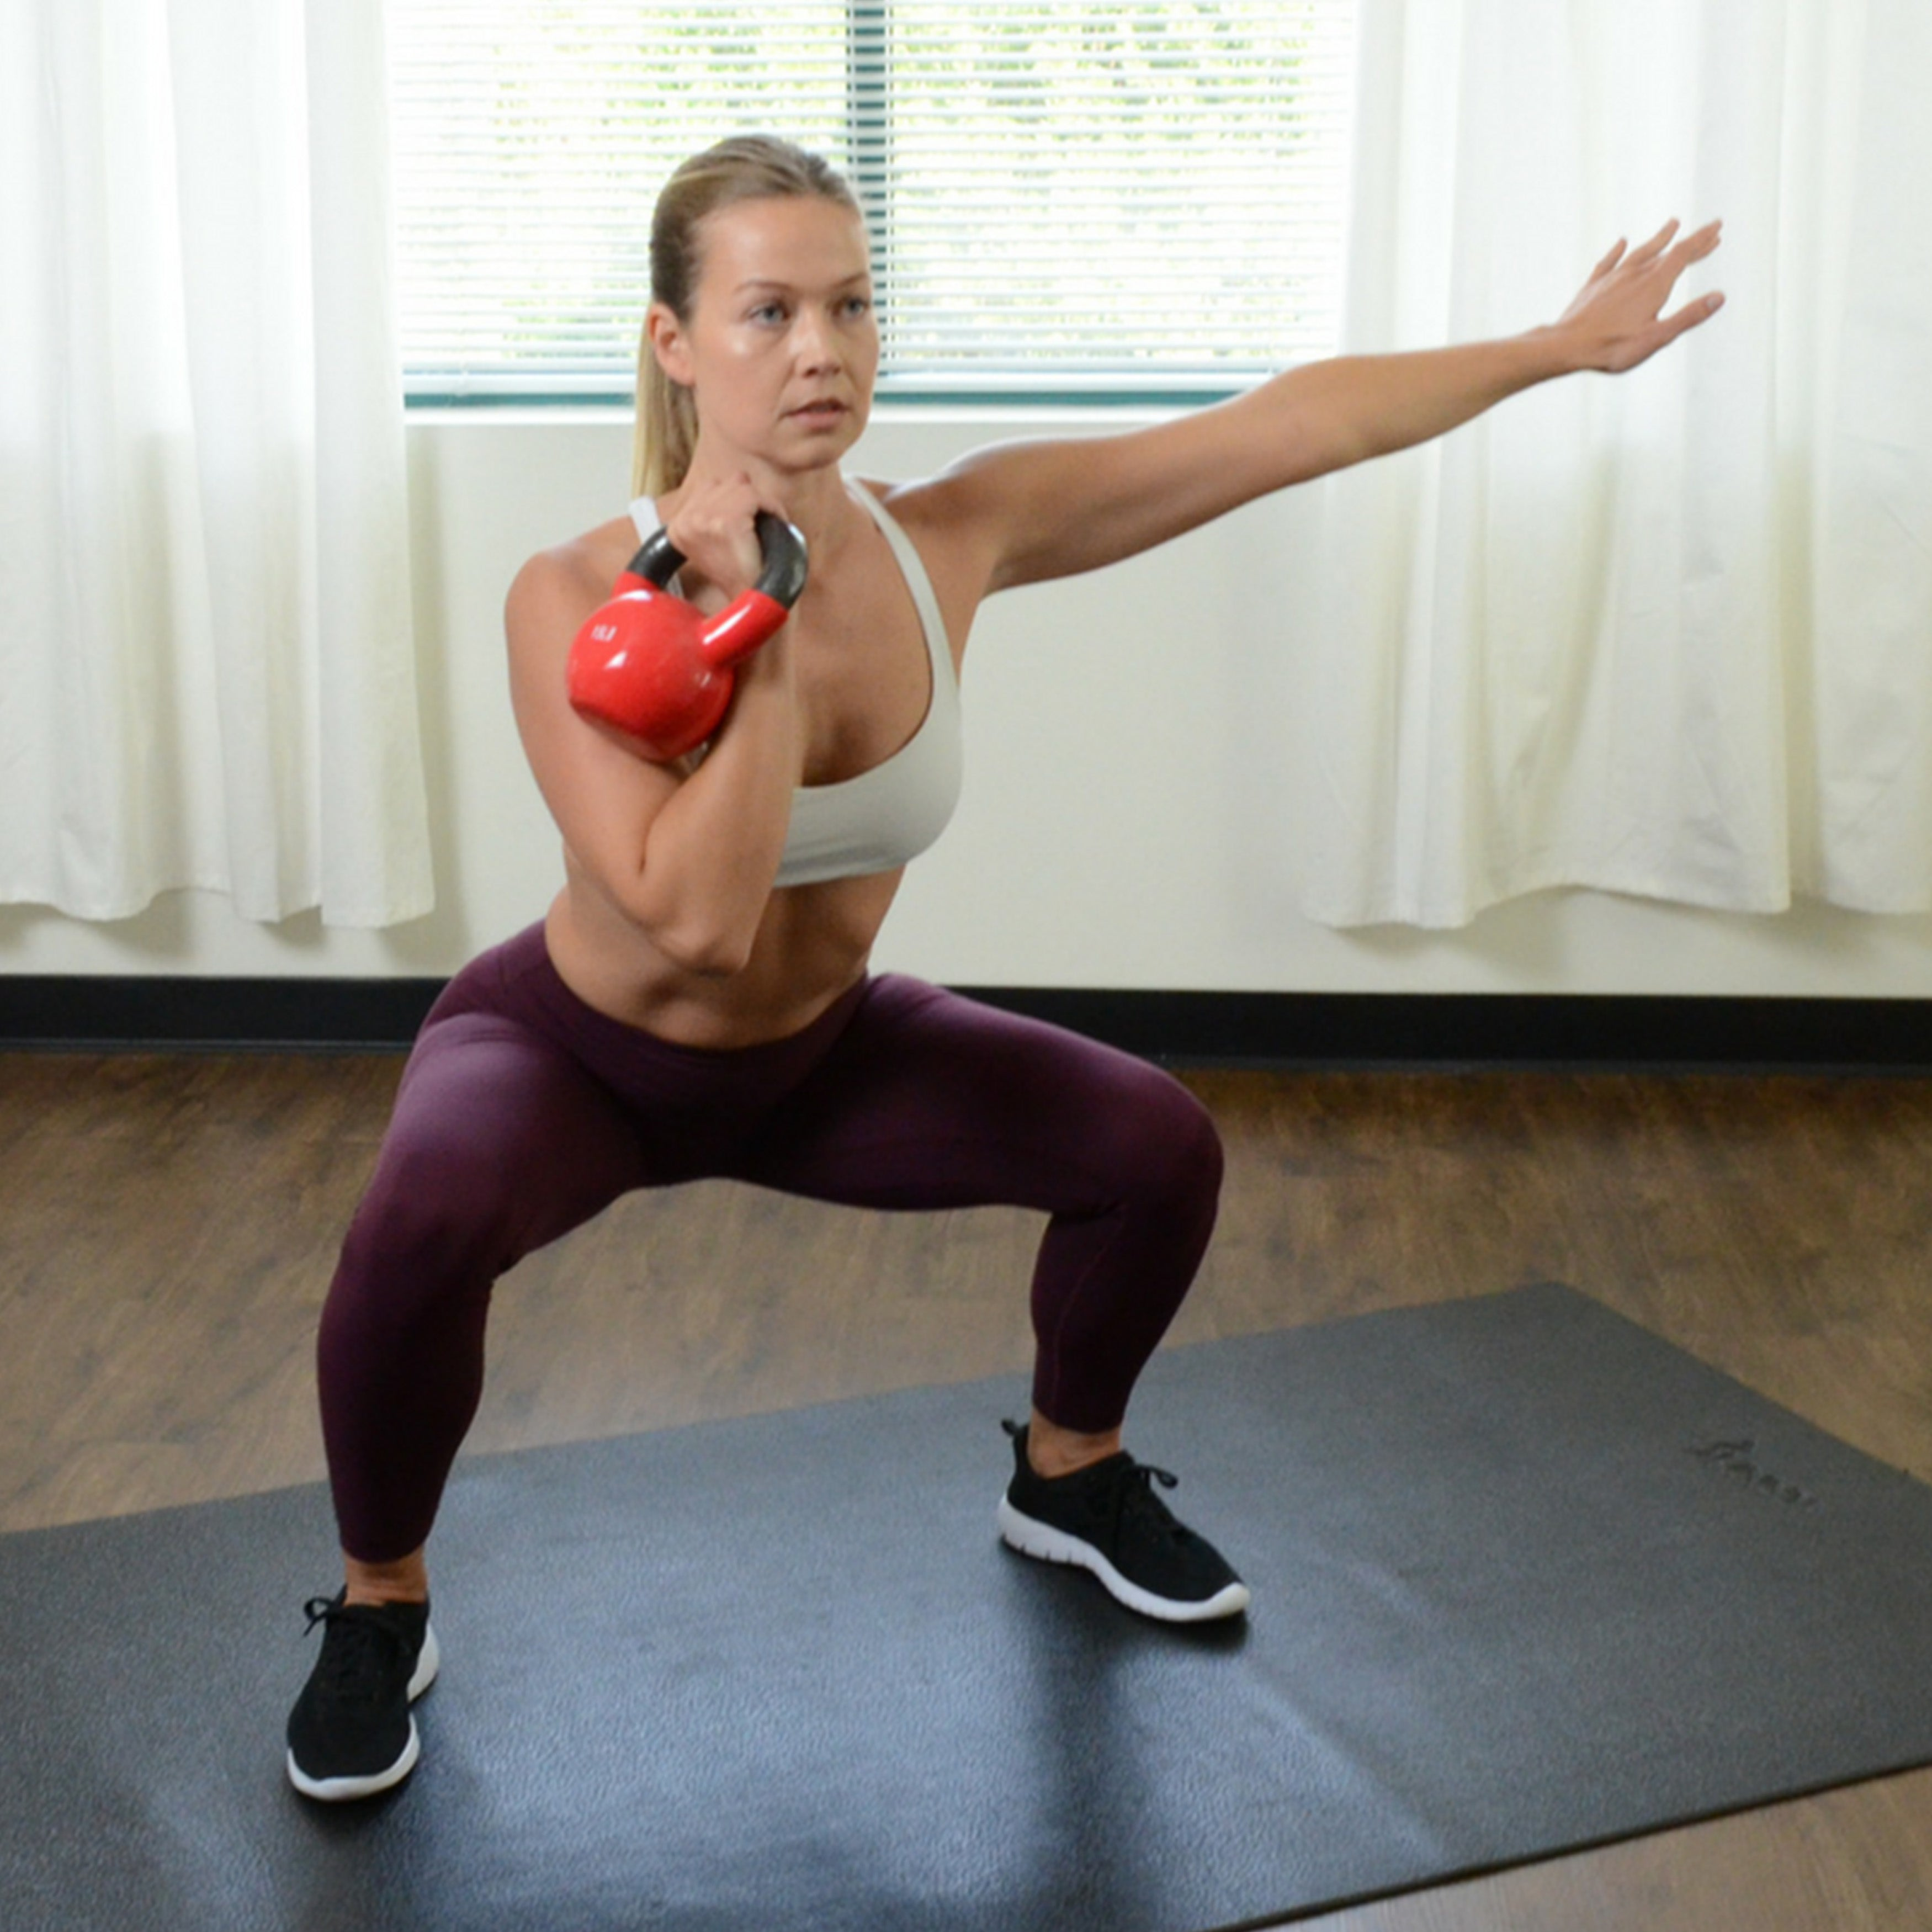 woman holding red kettlebell with her right hand while performing squat